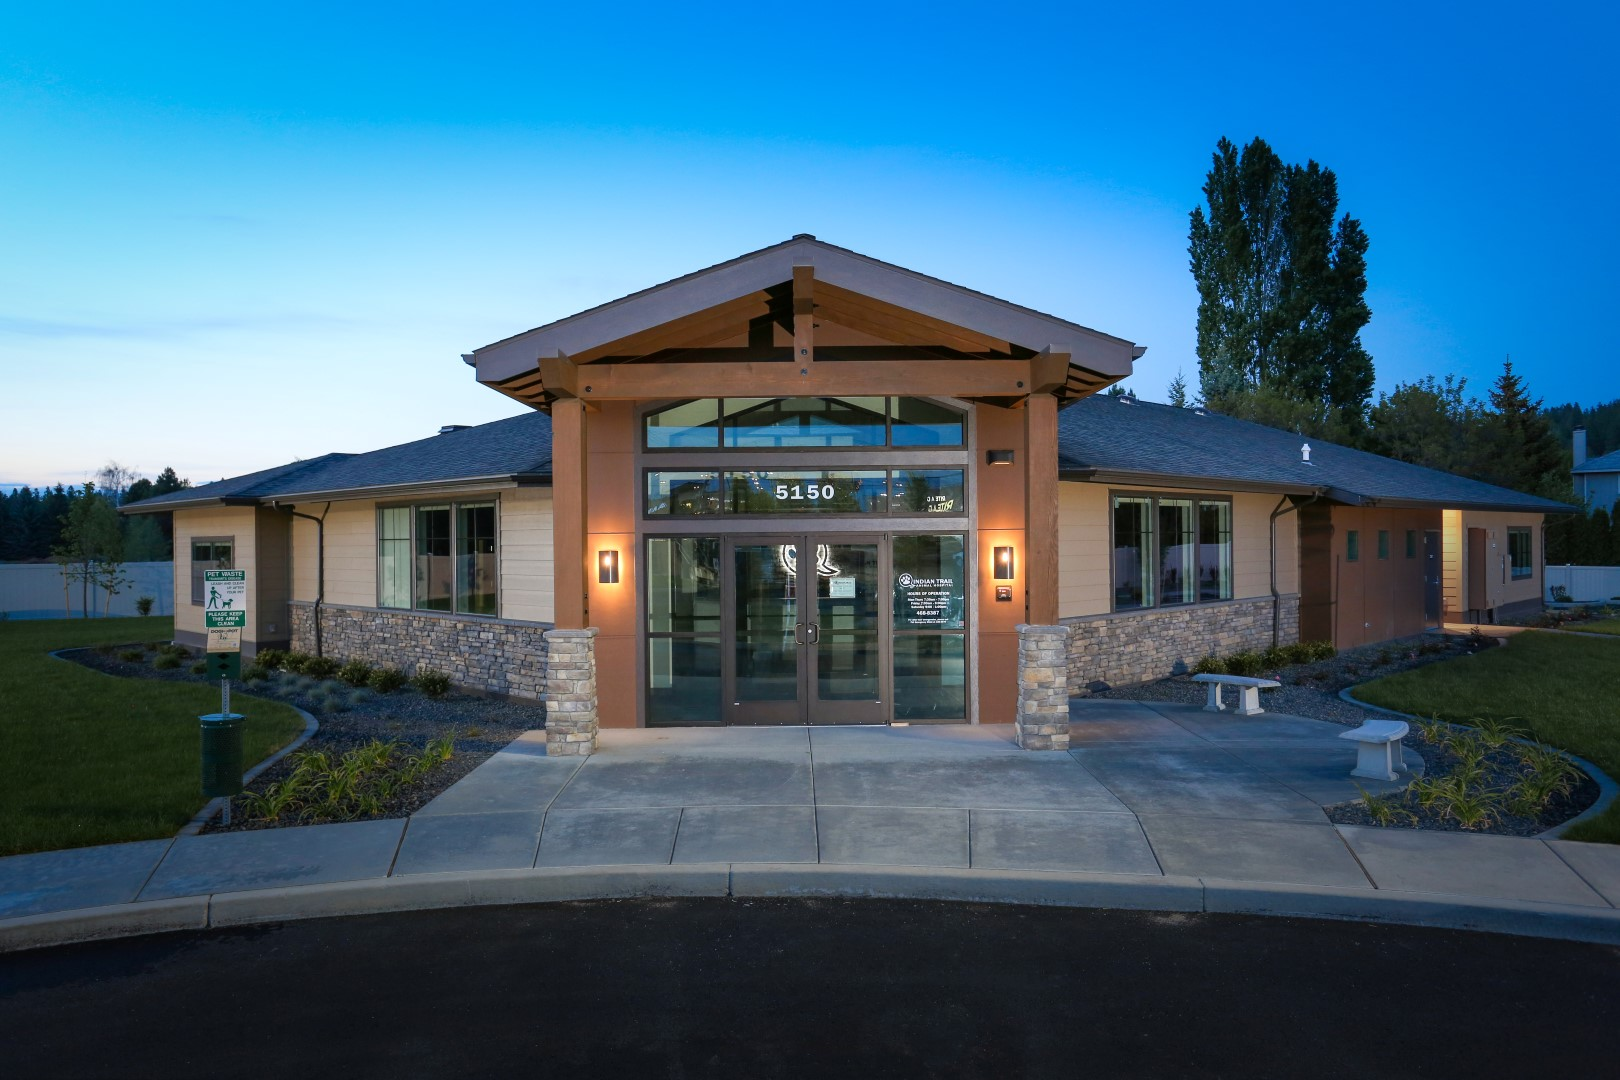 Indian Trail Animal Hospital